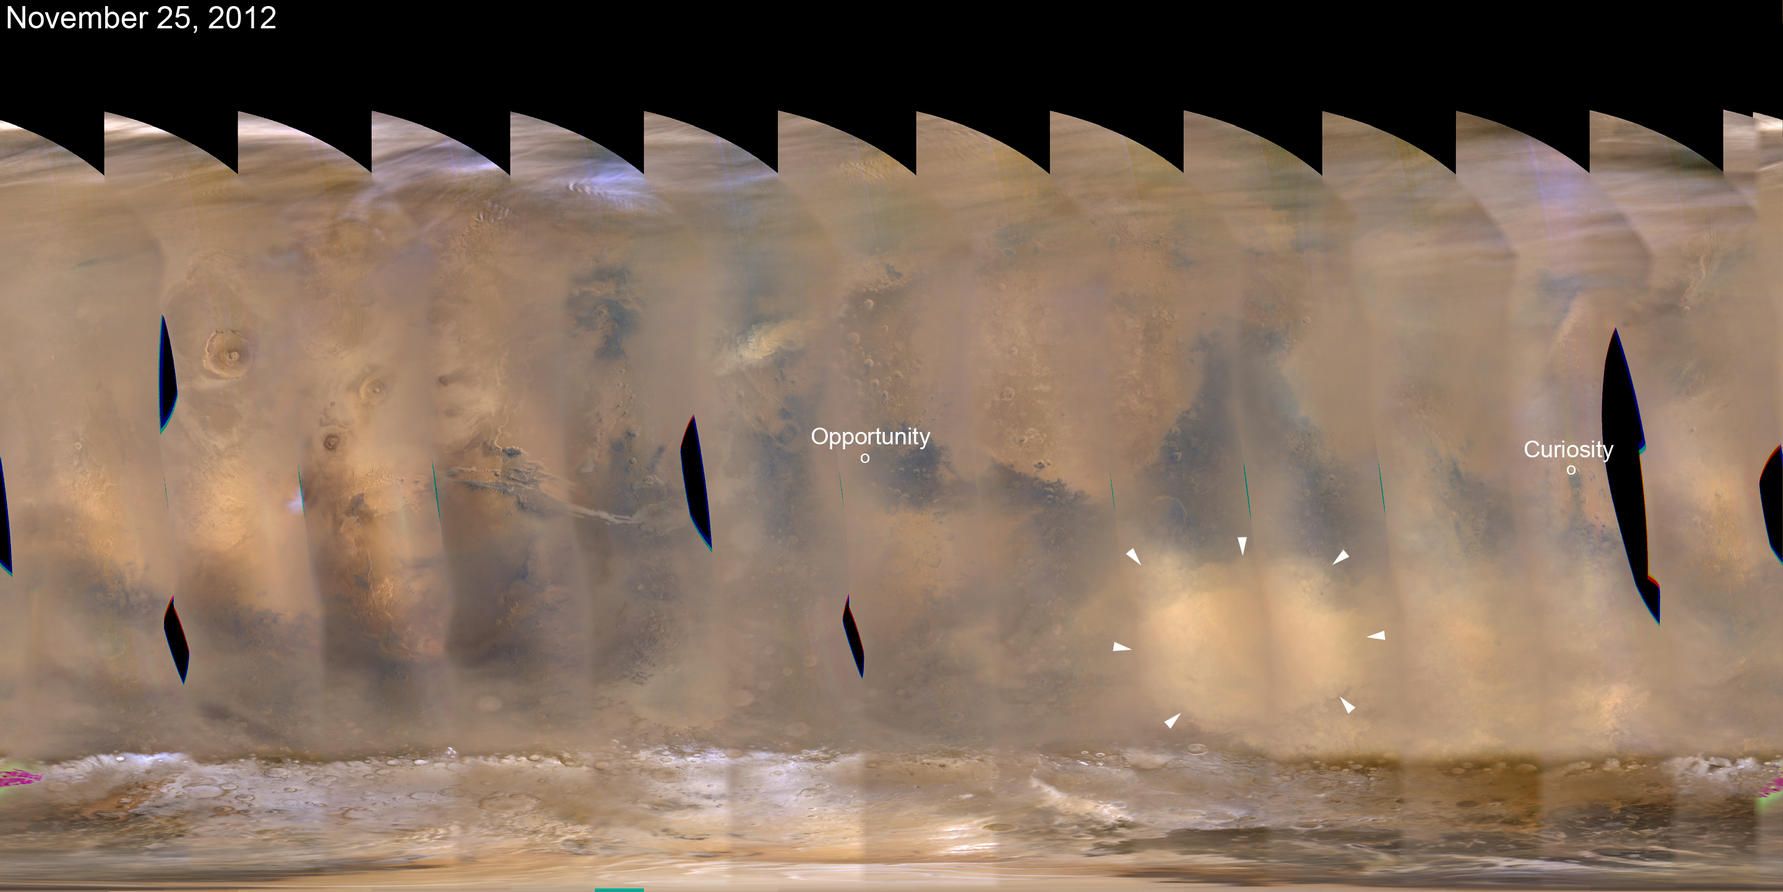 A regional dust storm visible in the southern hemisphere of Mars in this nearly global mosaic of observations made by the Mars Color Imager on NASA's Mars Reconnaissance Orbiter on Nov. 25, 2012.